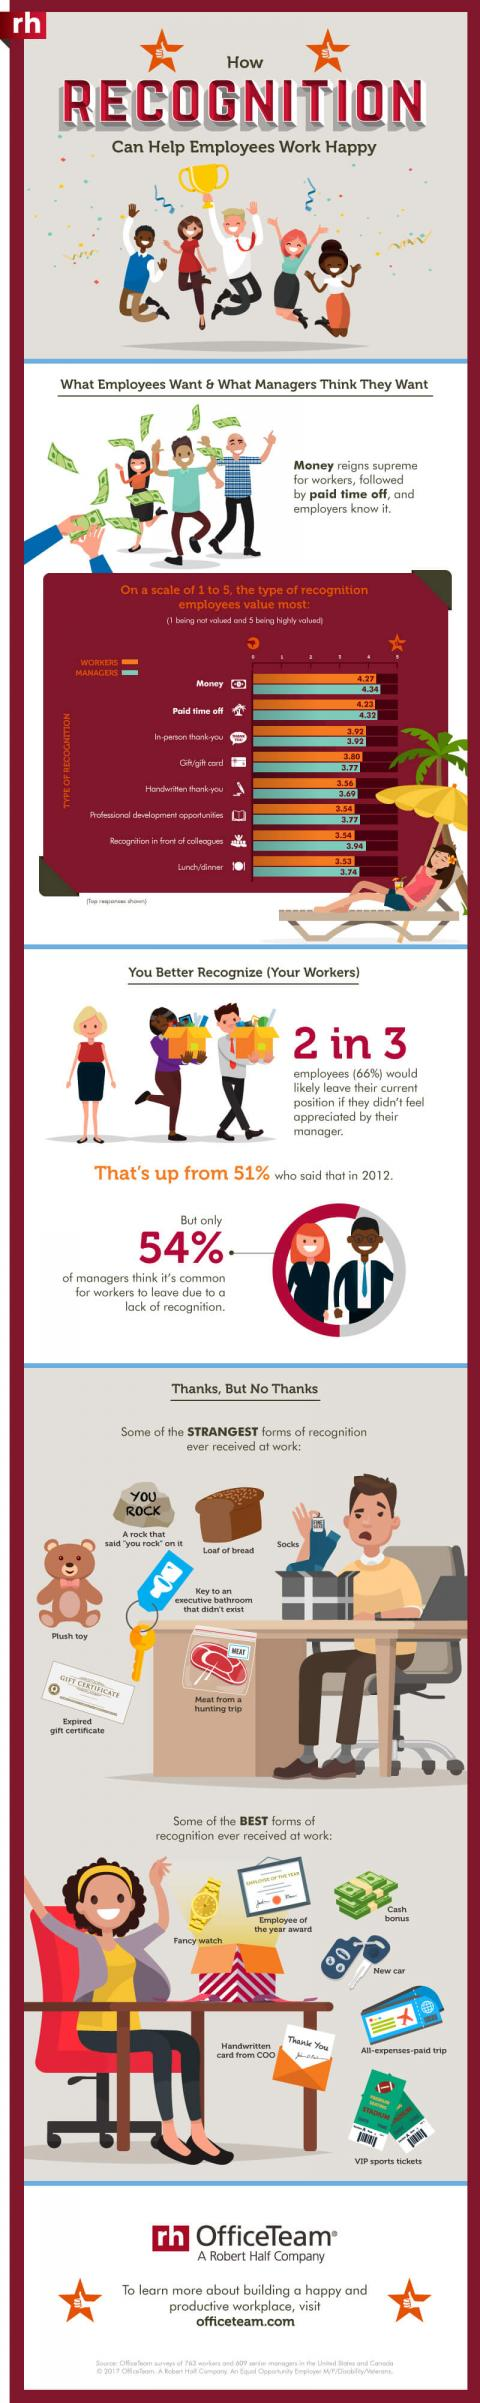 An infographic from OfficeTeam about the value of employee recognition in the workplace